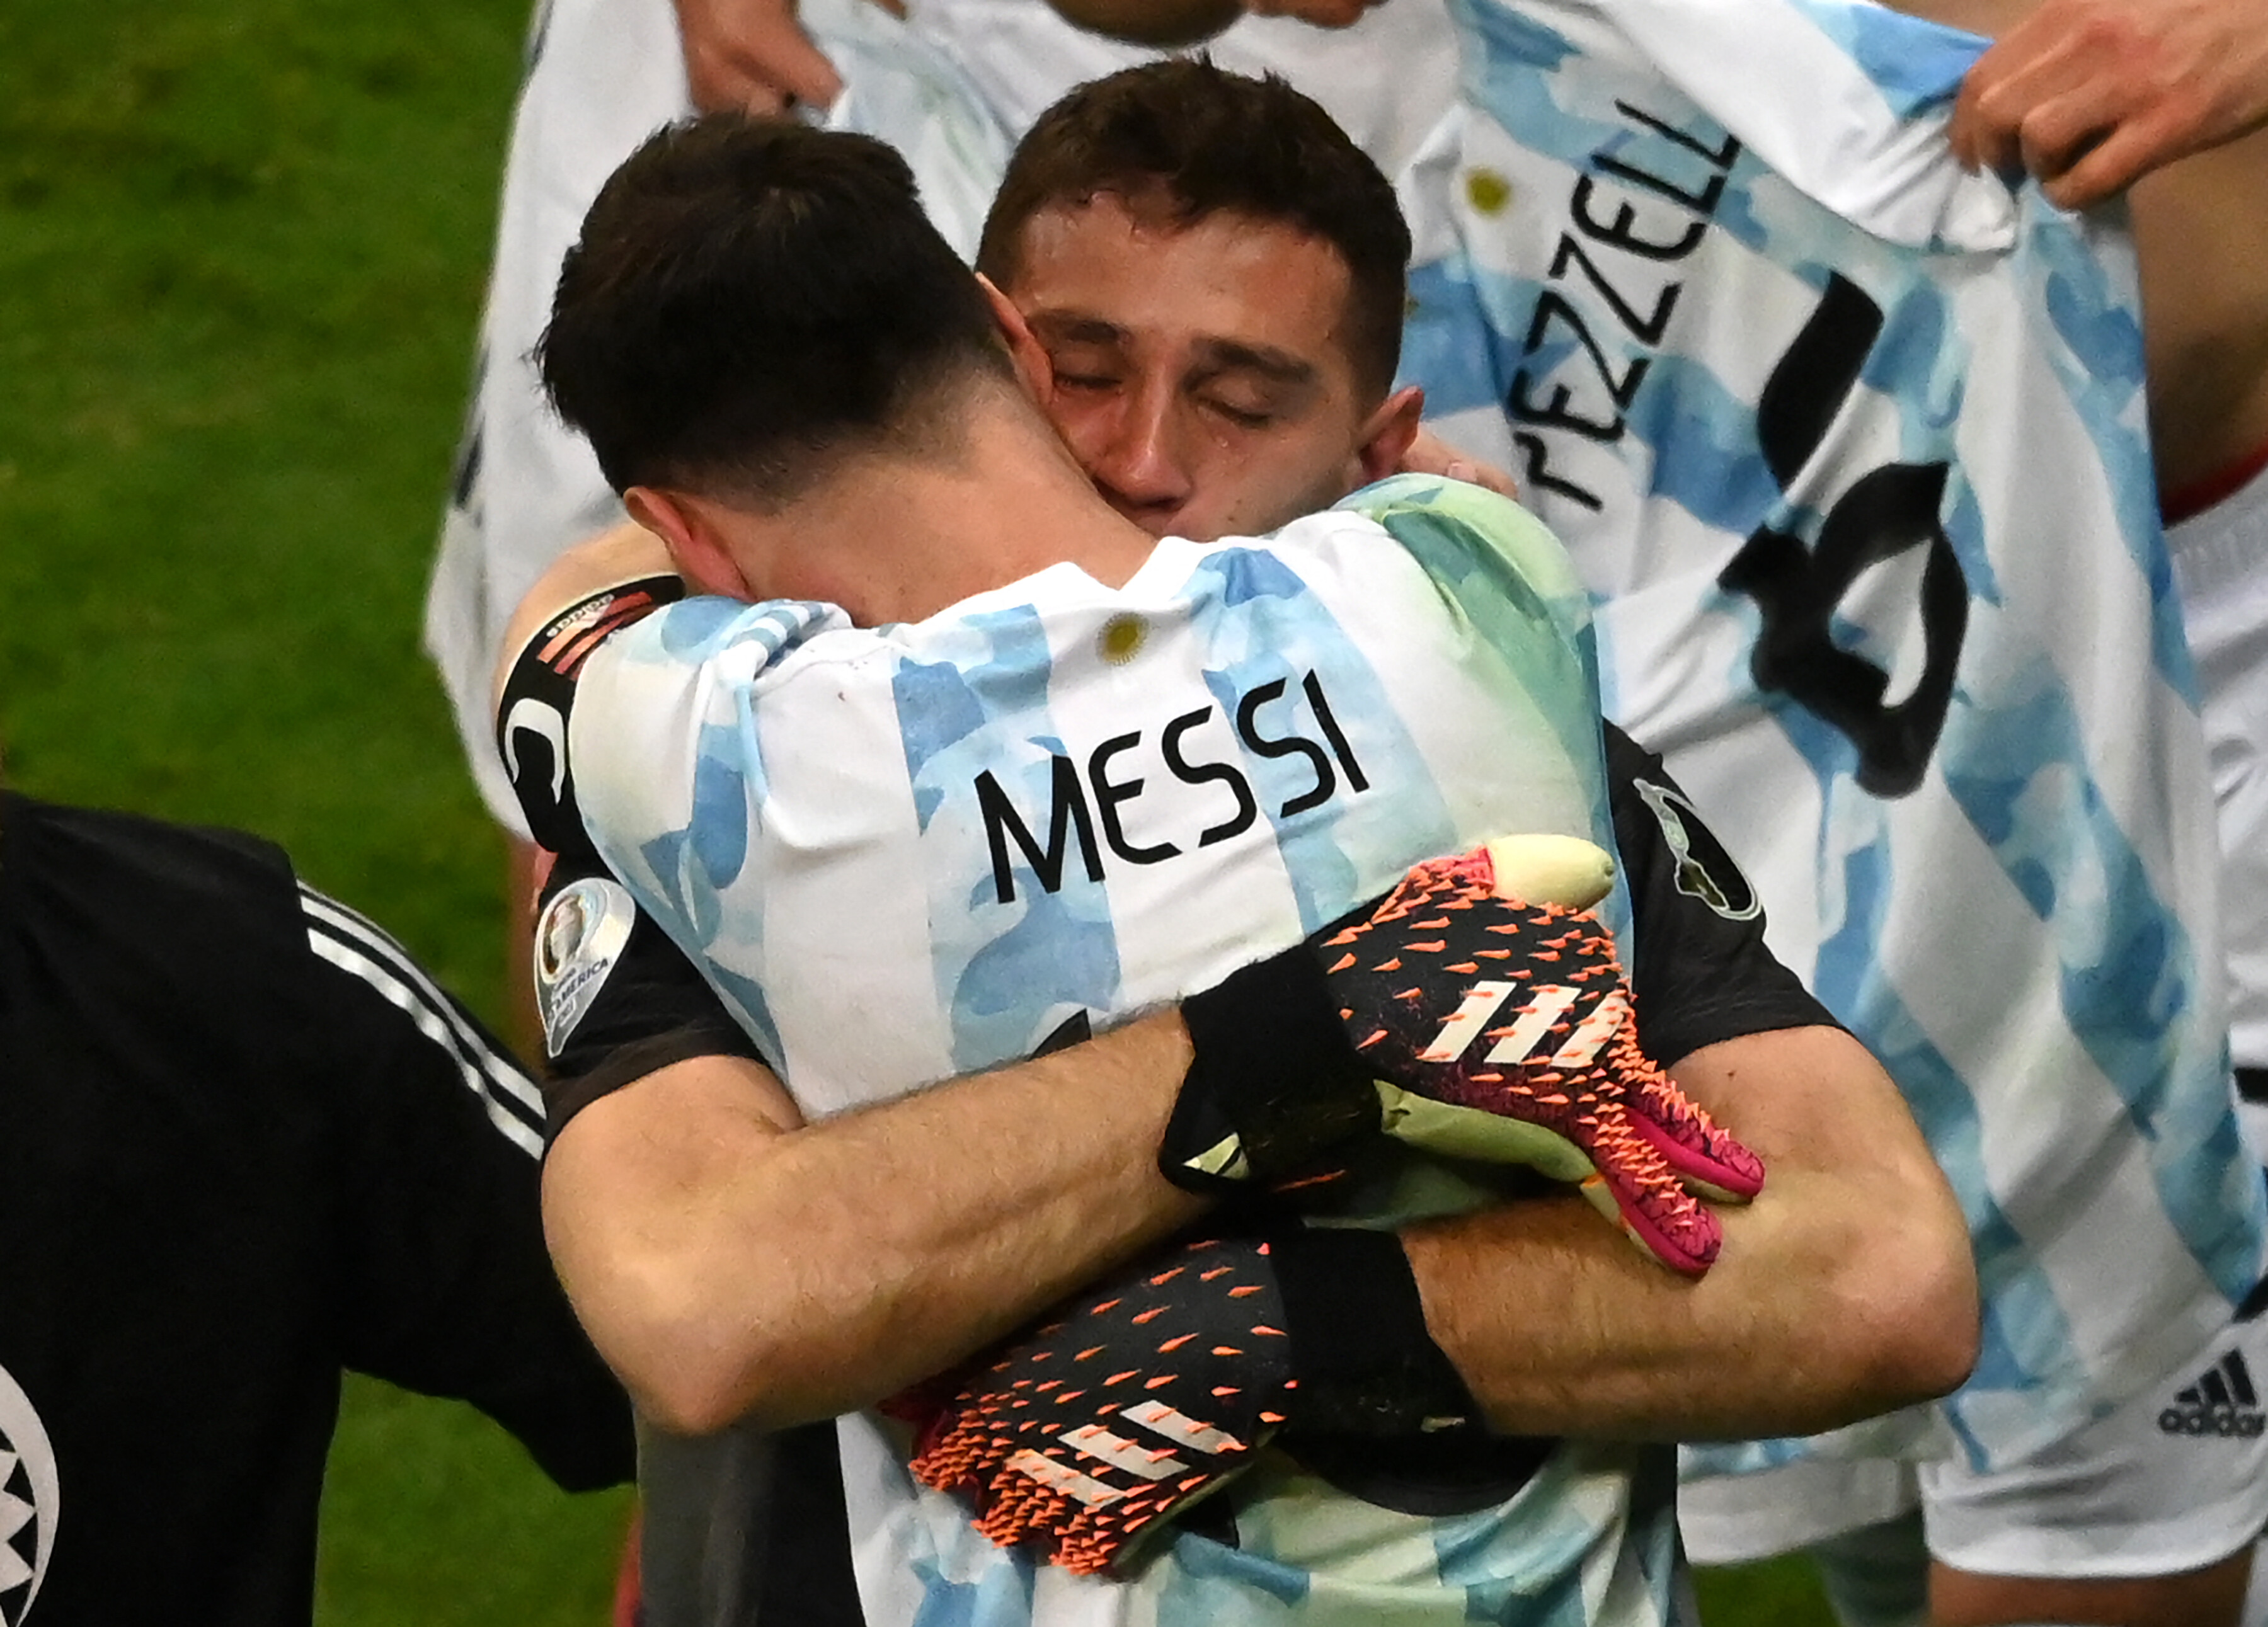 Lionel Messi faces old friend Neymar in last bid for Copa America glory with Argentina